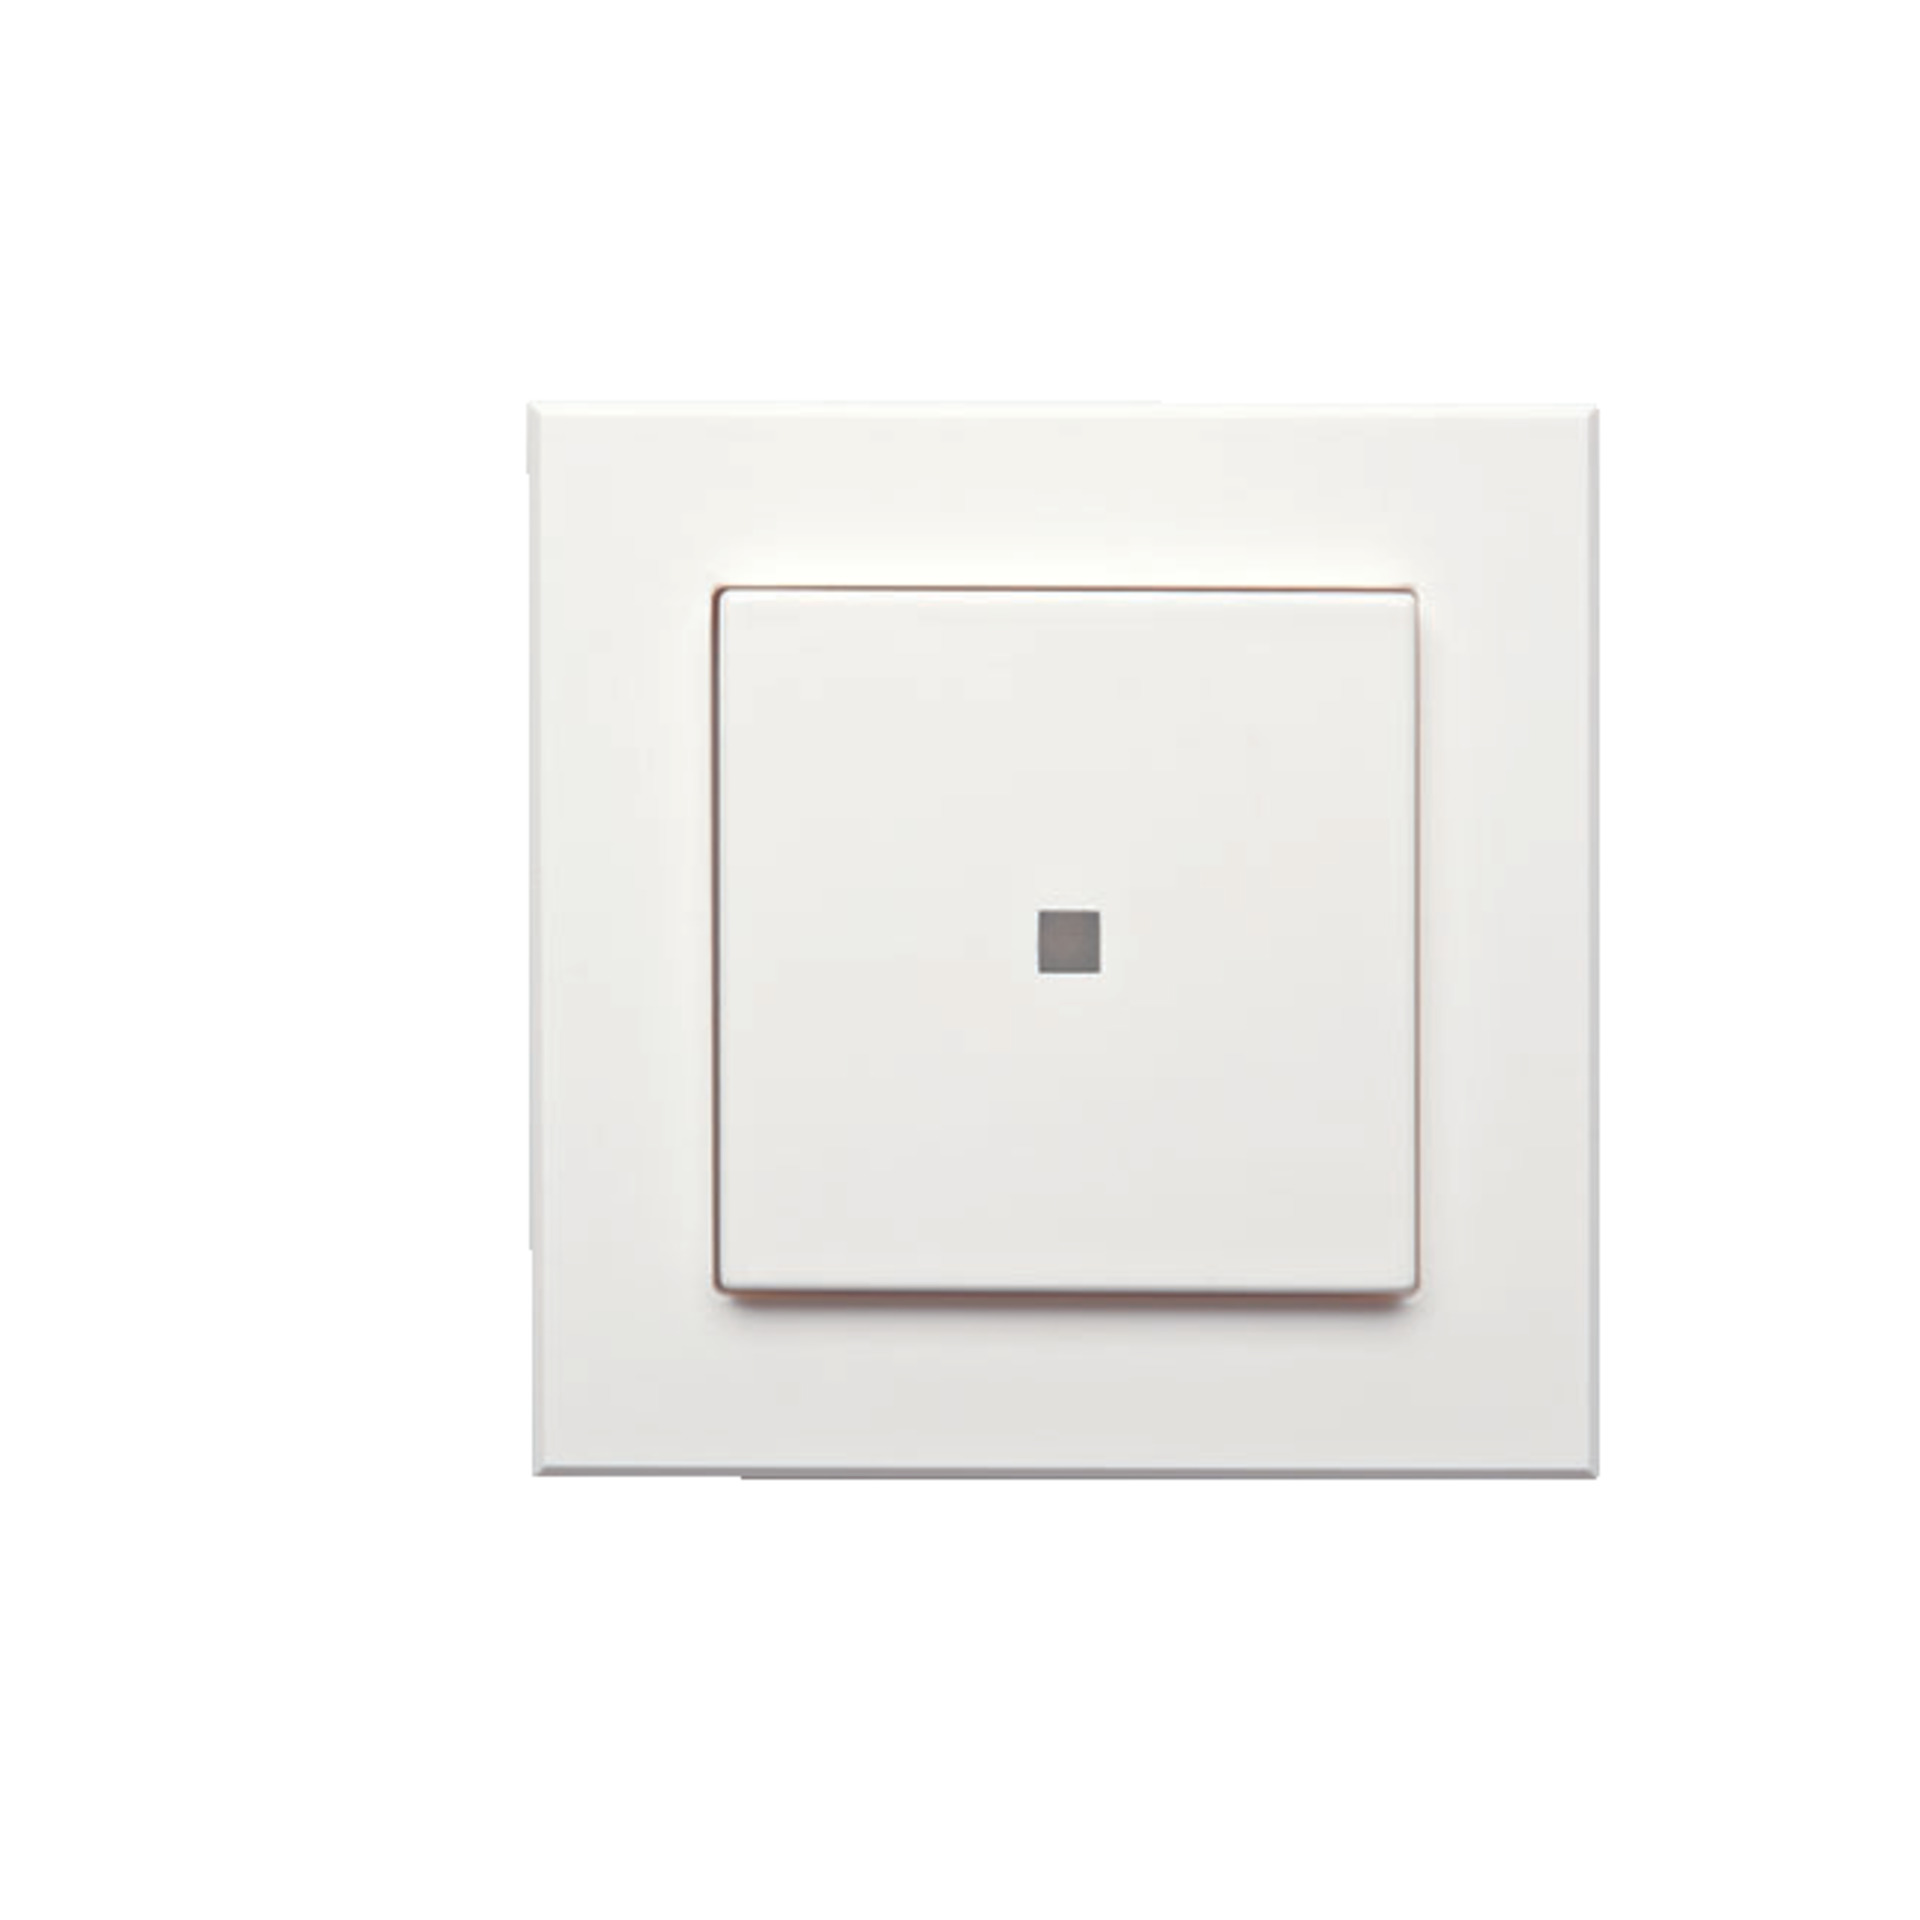 Homematic Funk-Wandtaster 2fach HM-PB-2-WM55-2 für Smart Home - Hausautomation